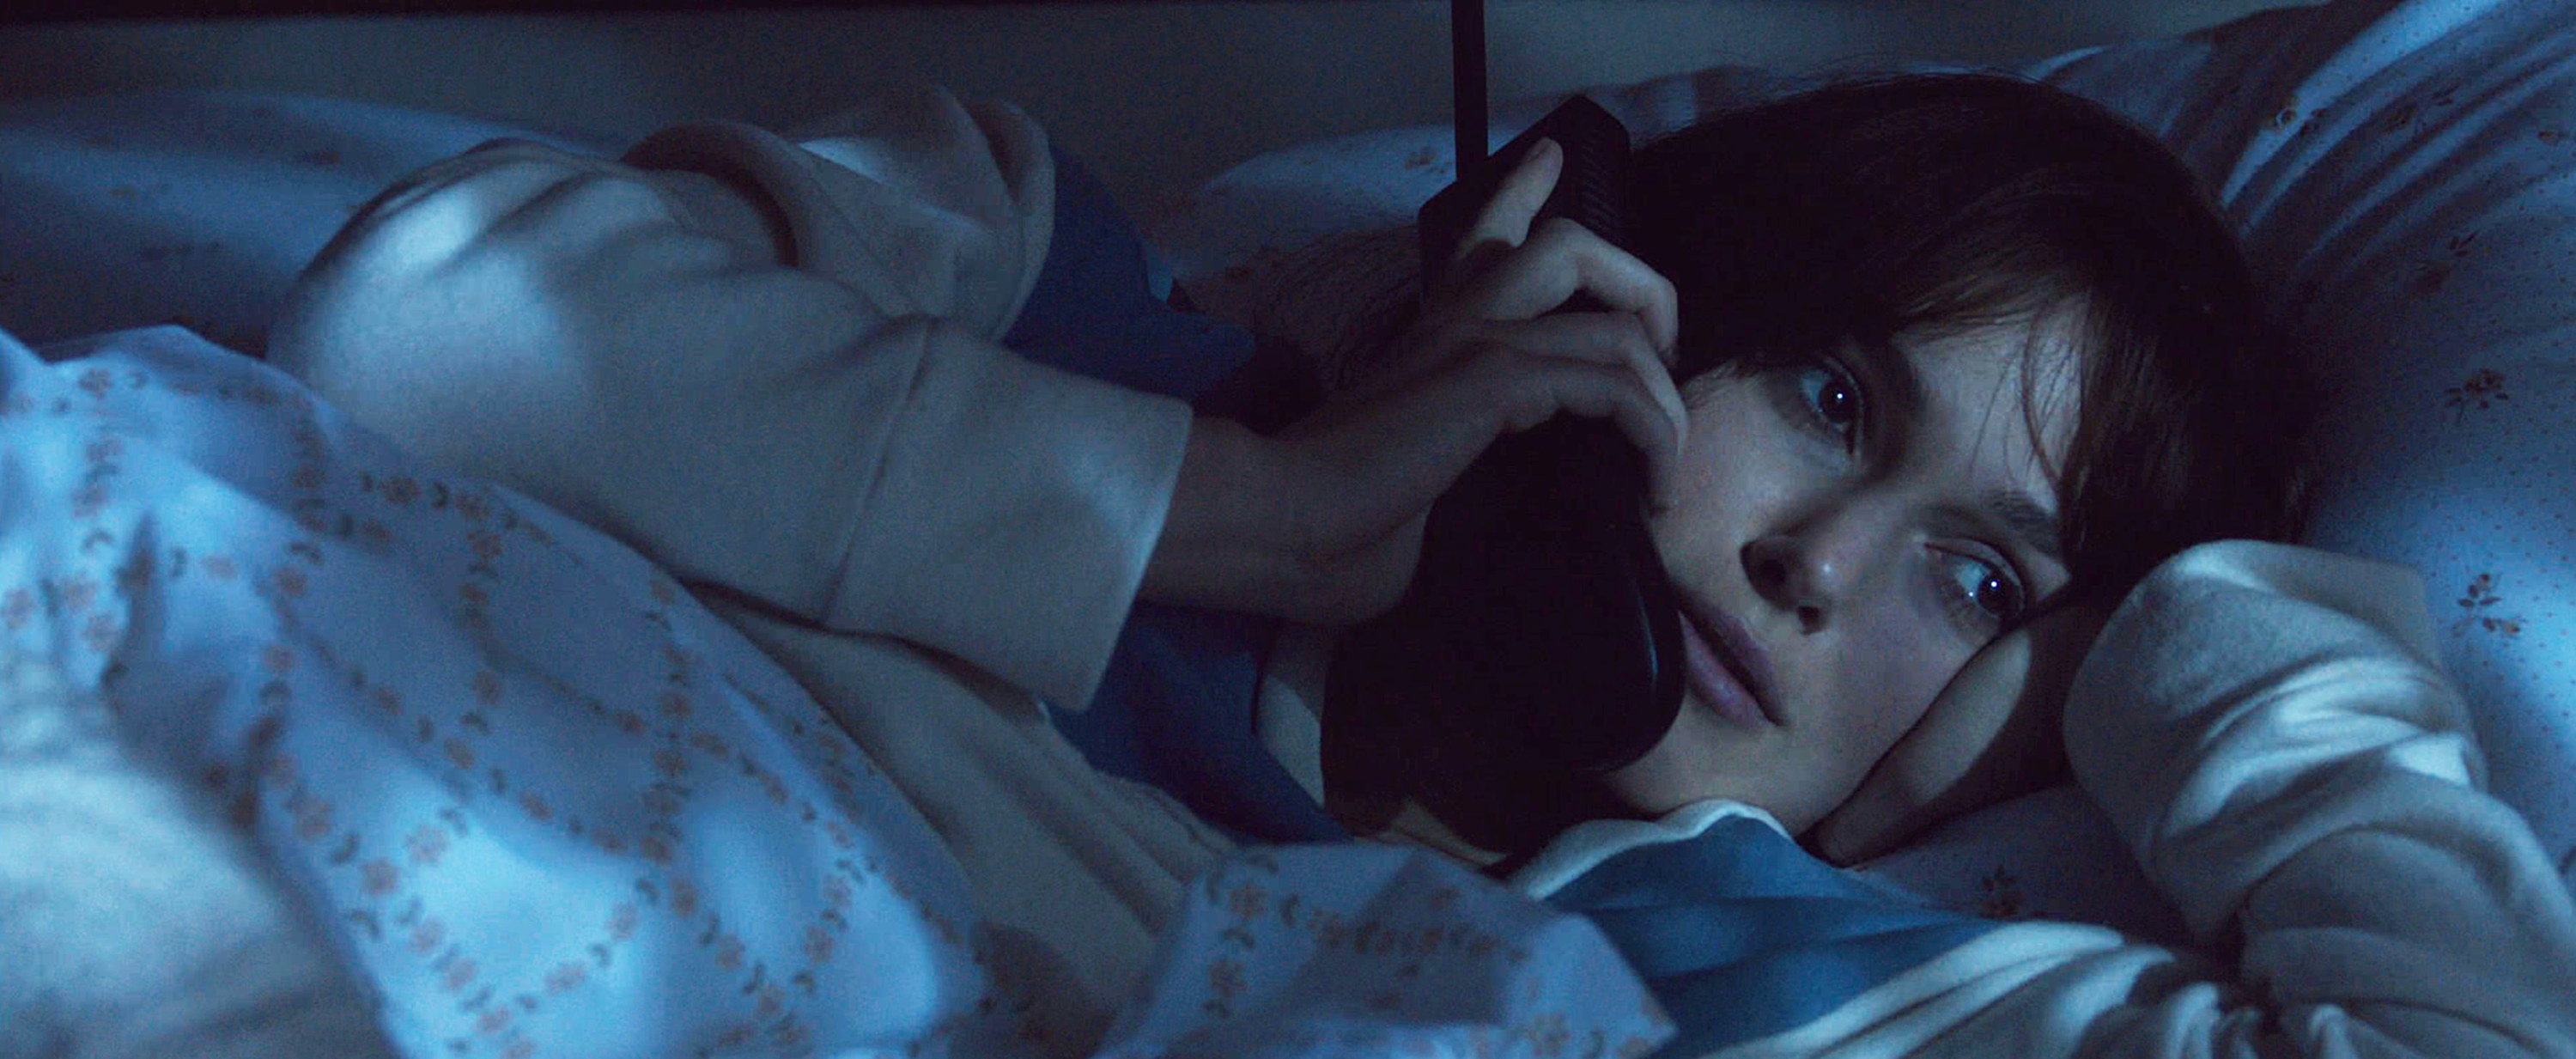 Keira Knightley talks on the phone in bed in the 2015 film Everest